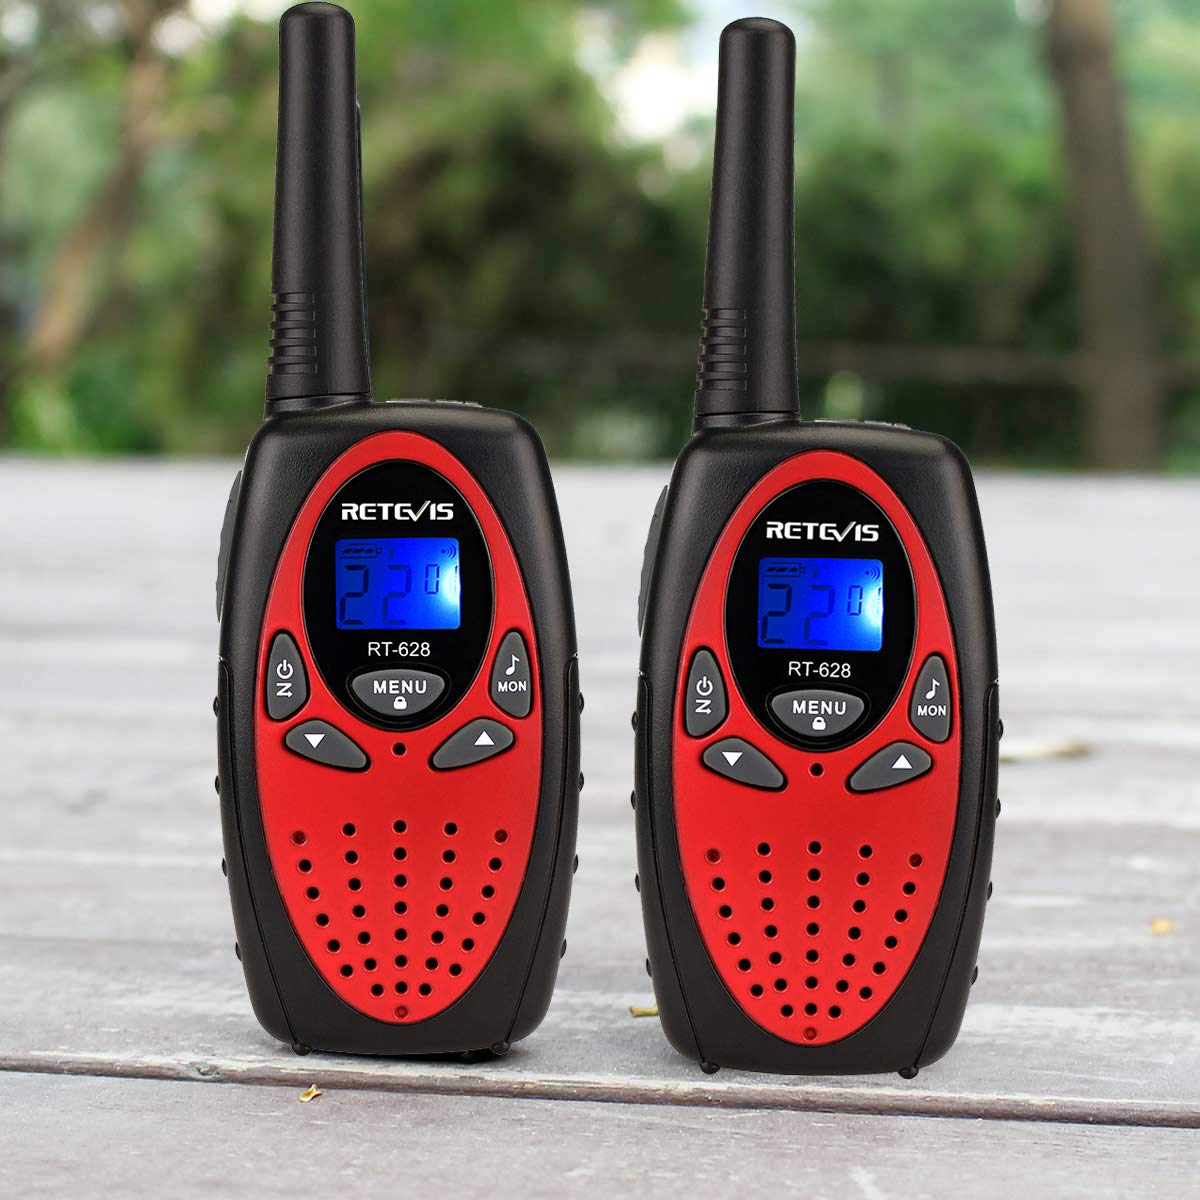 Retevis RT628 Walkie Talkies 22CH VOX FRS License-Free 2 Way Radios UHF Handheld Two Way Radio(4 Pack,Red) by Retevis (Image #2)